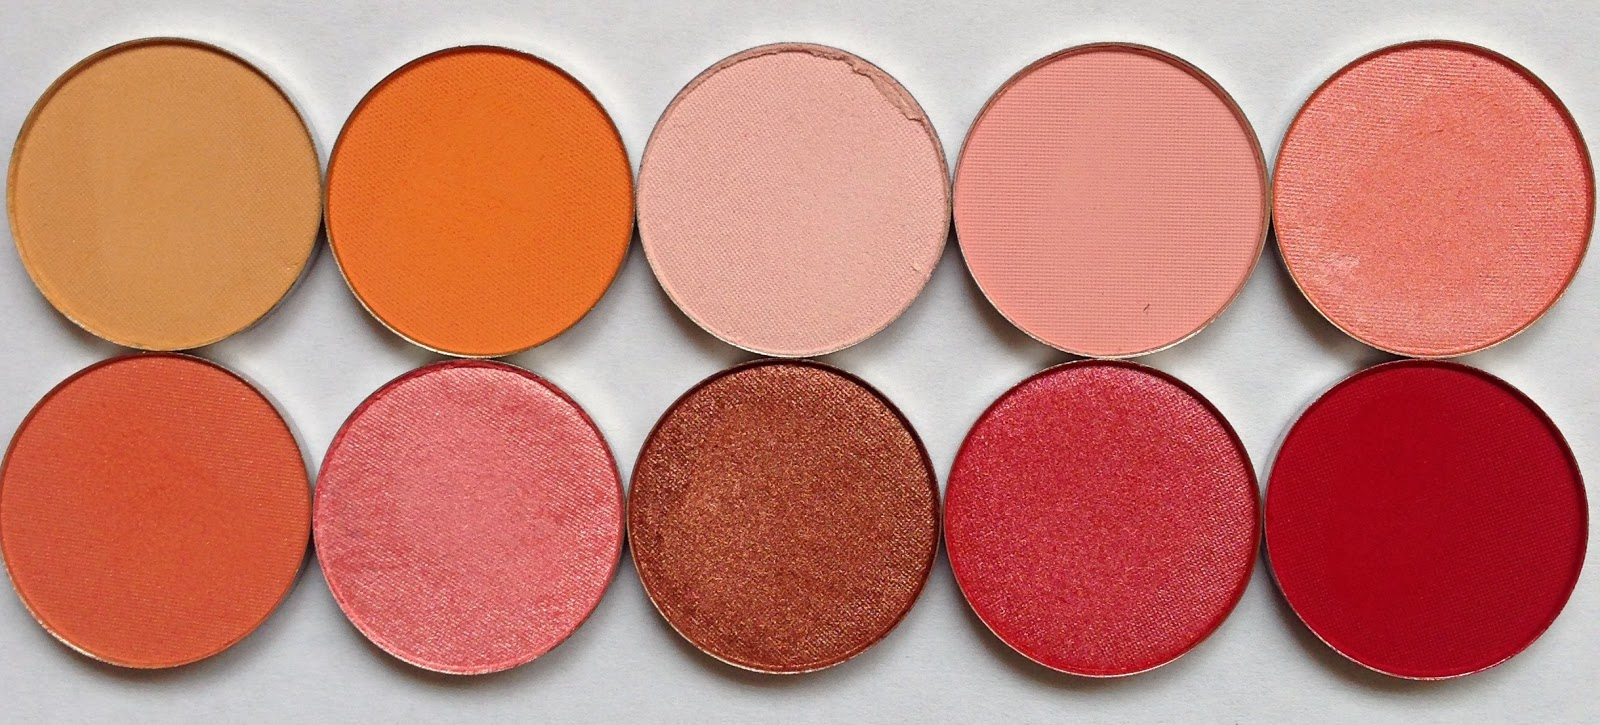 cilla makeup my coastal scents pots haul with swatches